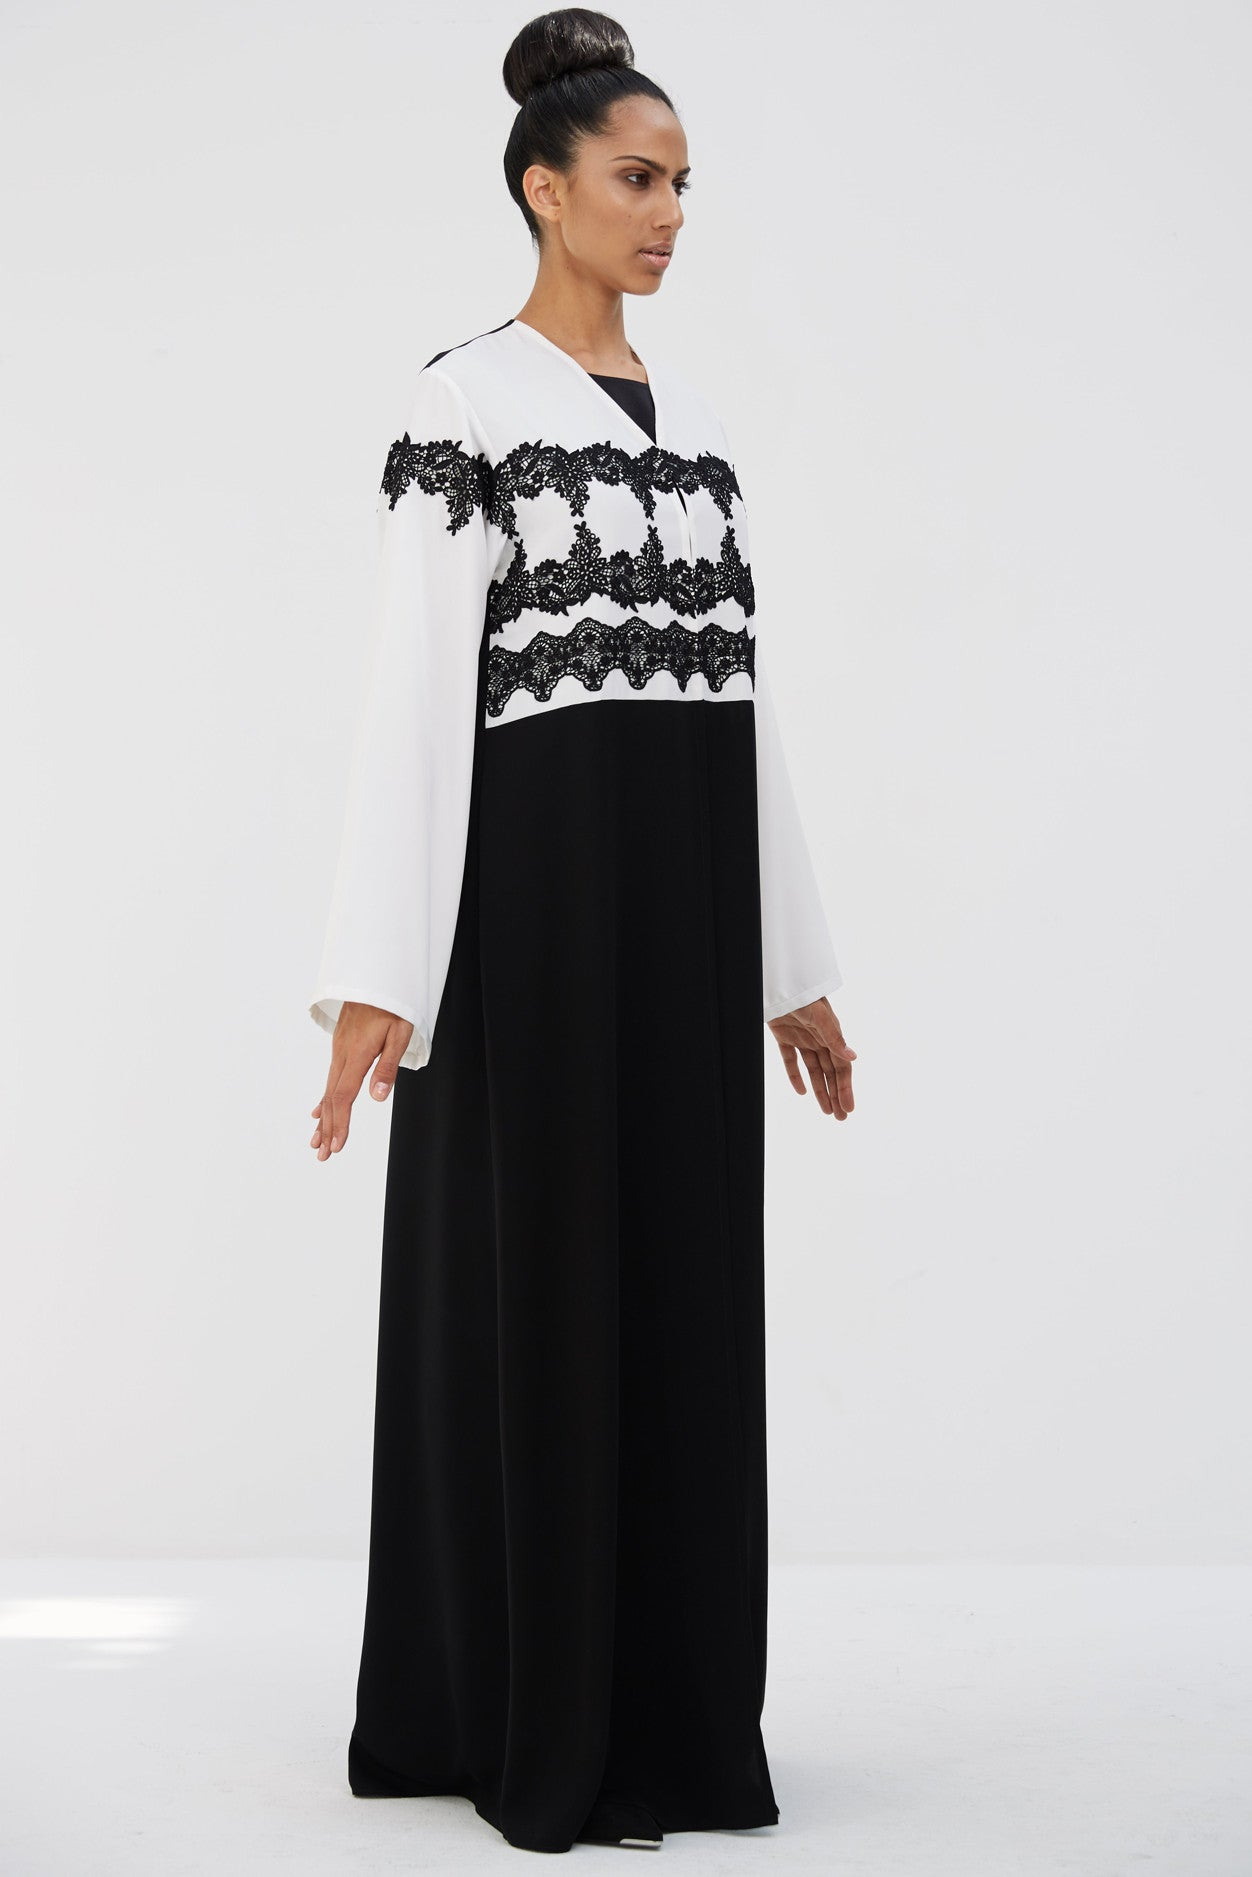 LILI - ACR1903Z - Arabesque classic cut abaya with multiple lines of flower guipure borders on bust.